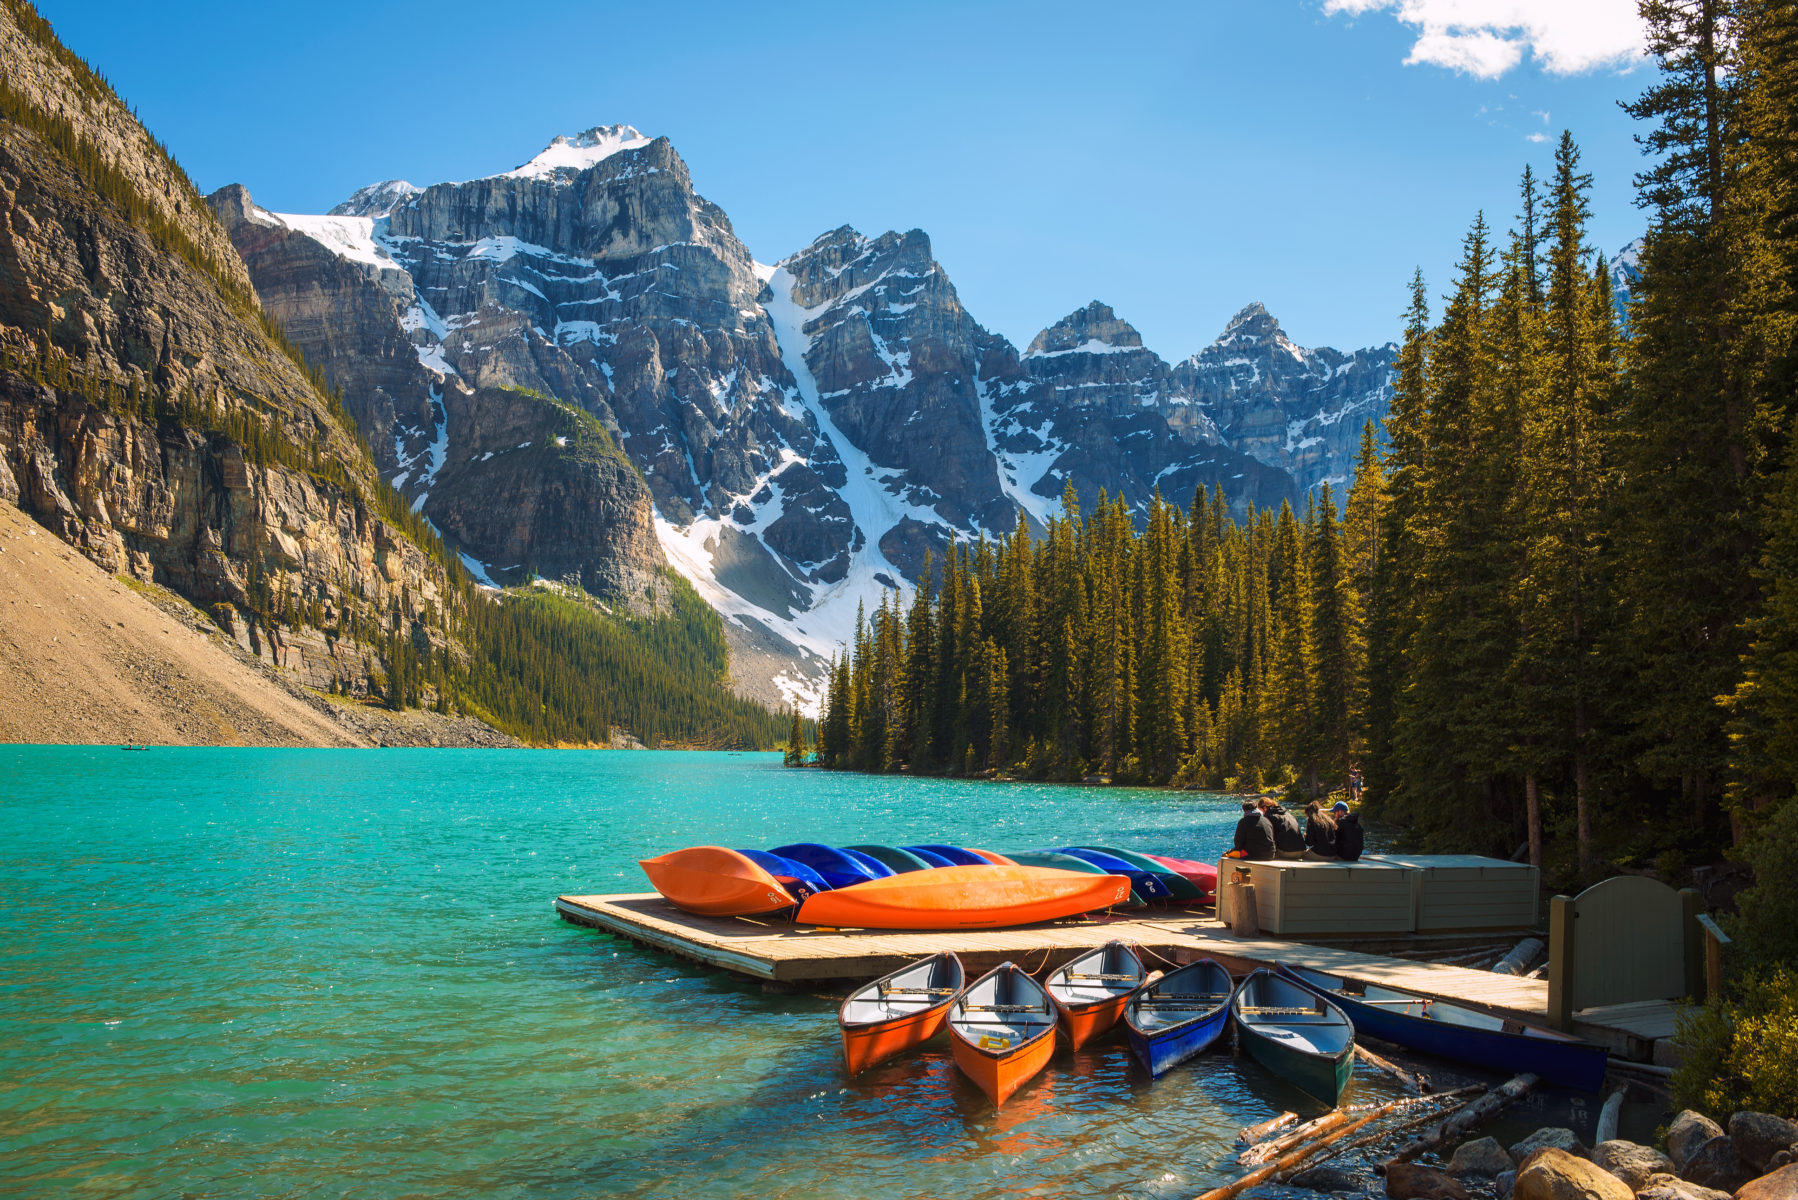 Canoes at beautiful Moraine Lake in Banff National Park